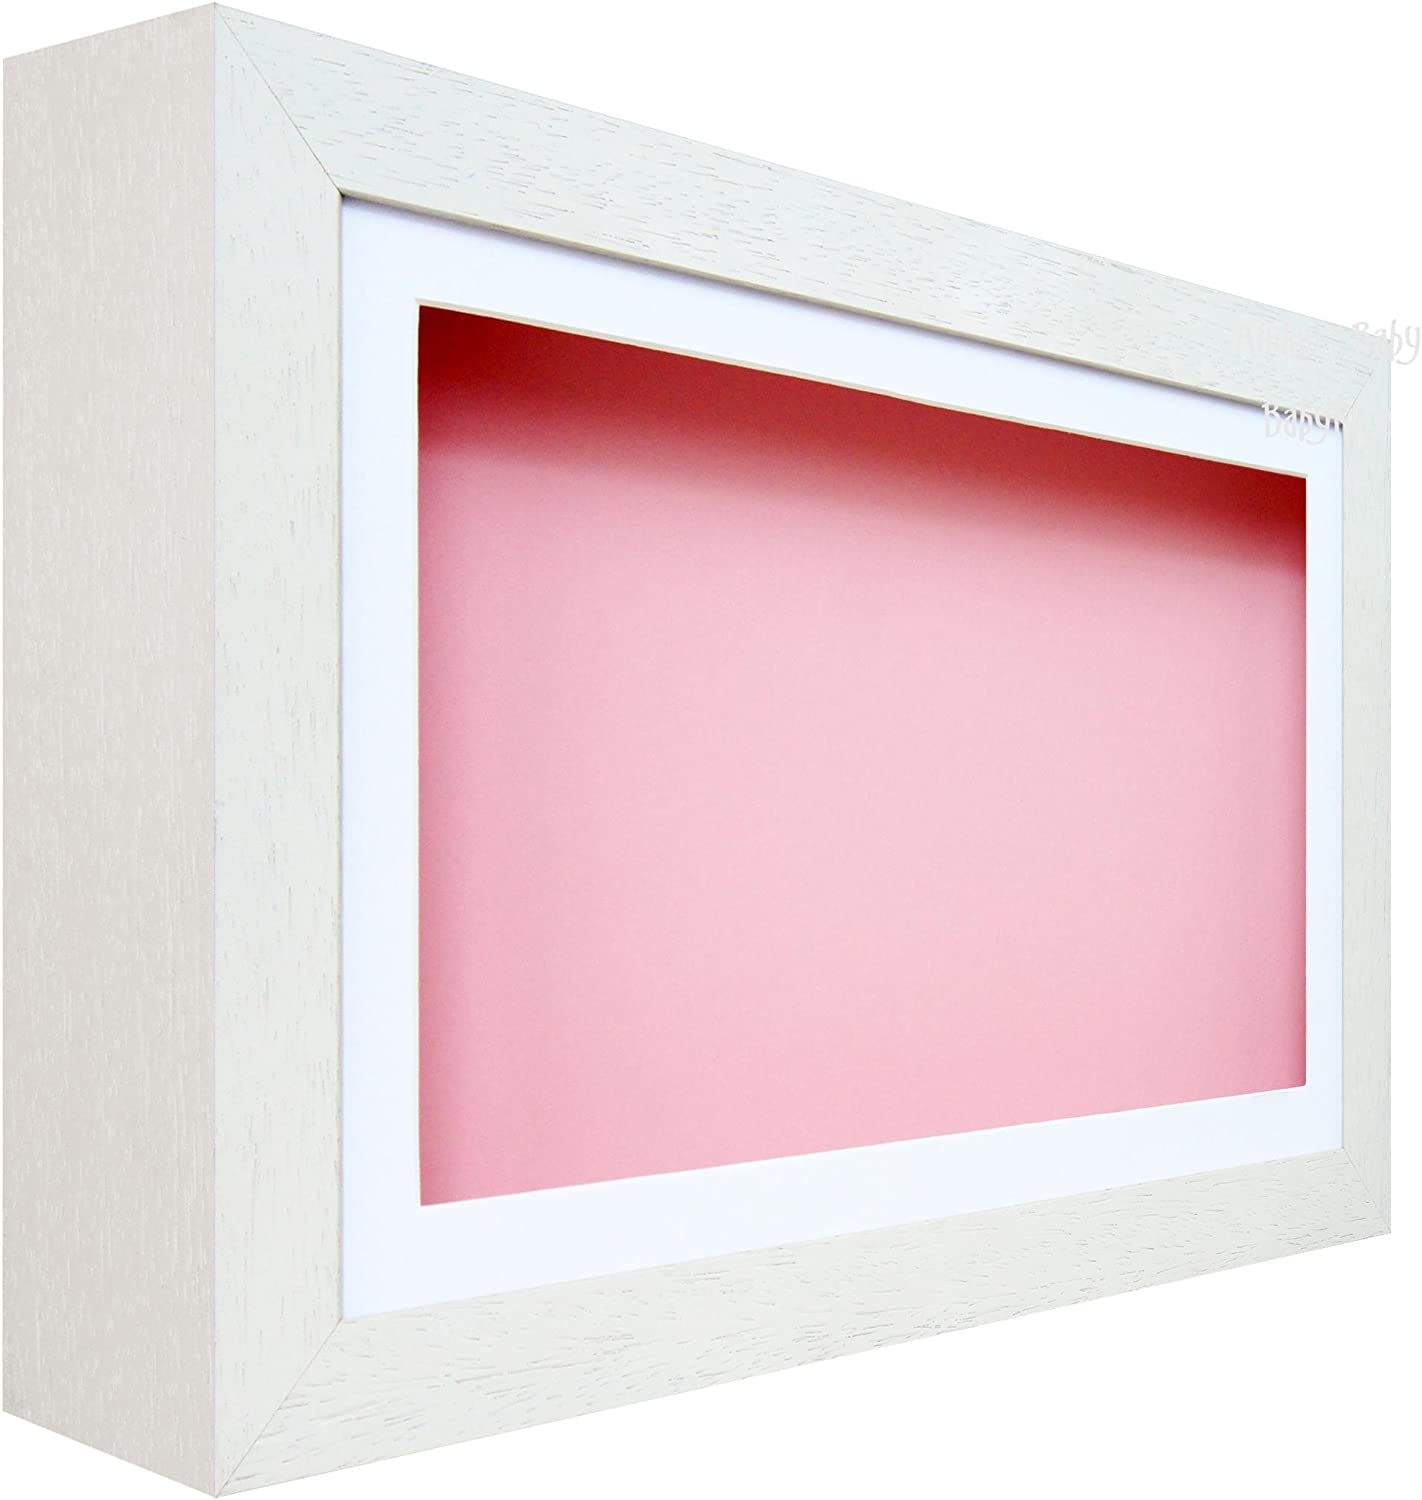 New White Deep Box Display Frame 2D 3D Pictures Art Objects Crafts Pink Mount